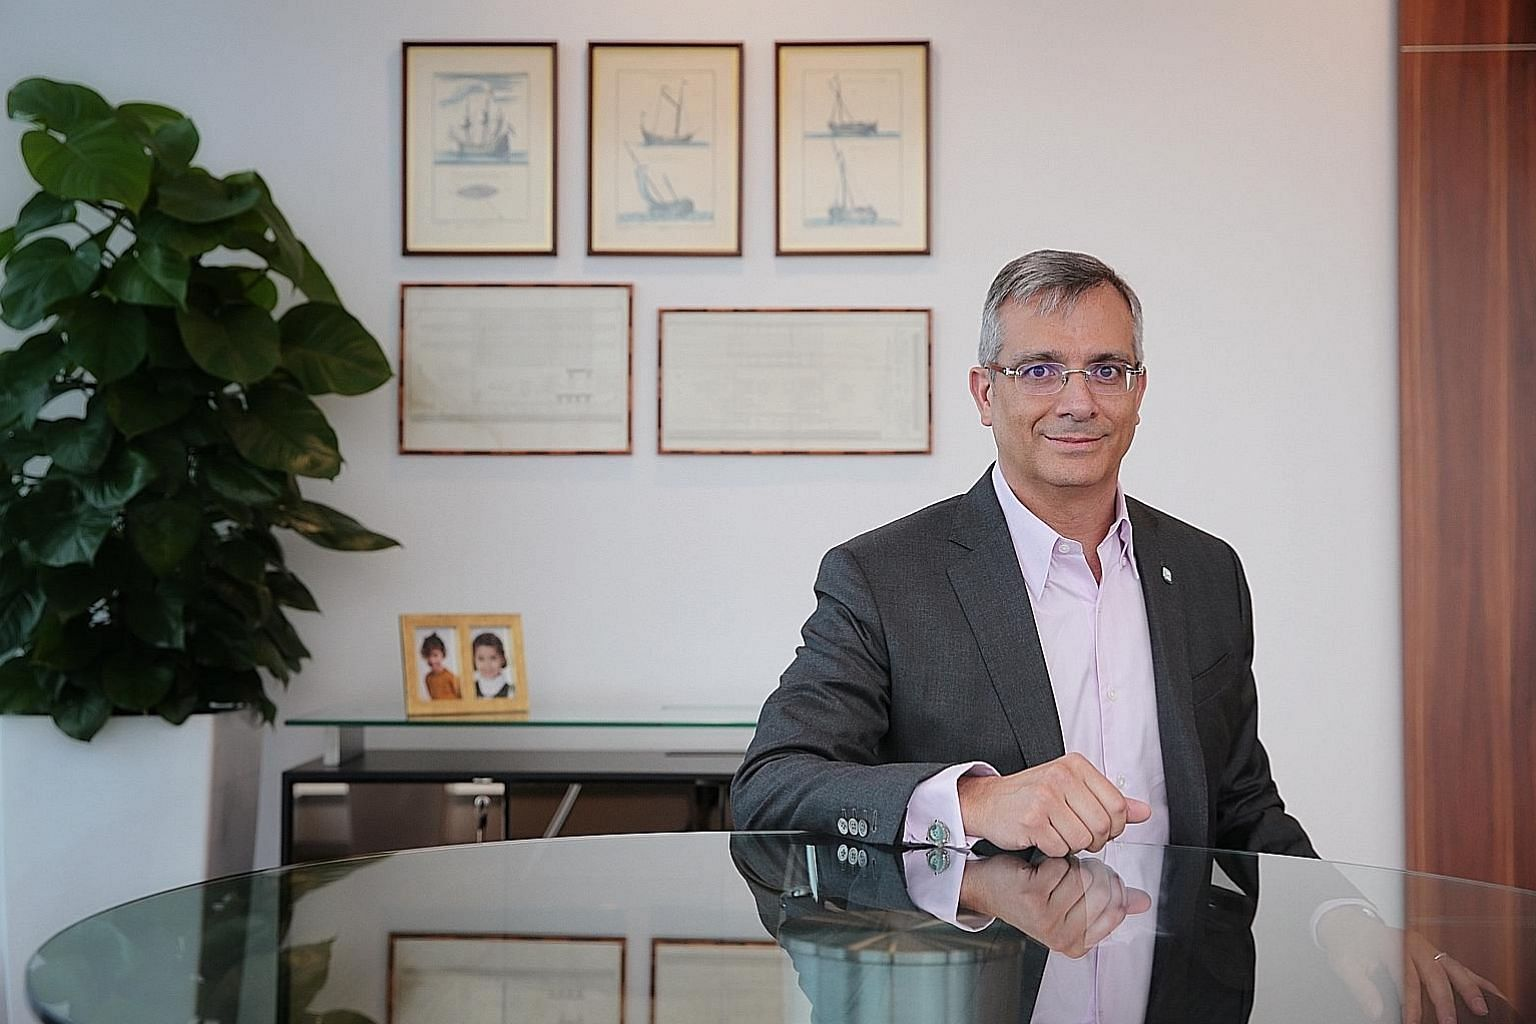 Pavilion Energy group chief executive Frederic Barnaud (left) sees the Singapore market as an important one as it has a location advantage for trading. The BW Pavilion Aranda (above) is a vessel that Pavilion Energy will charter on a long-term basis